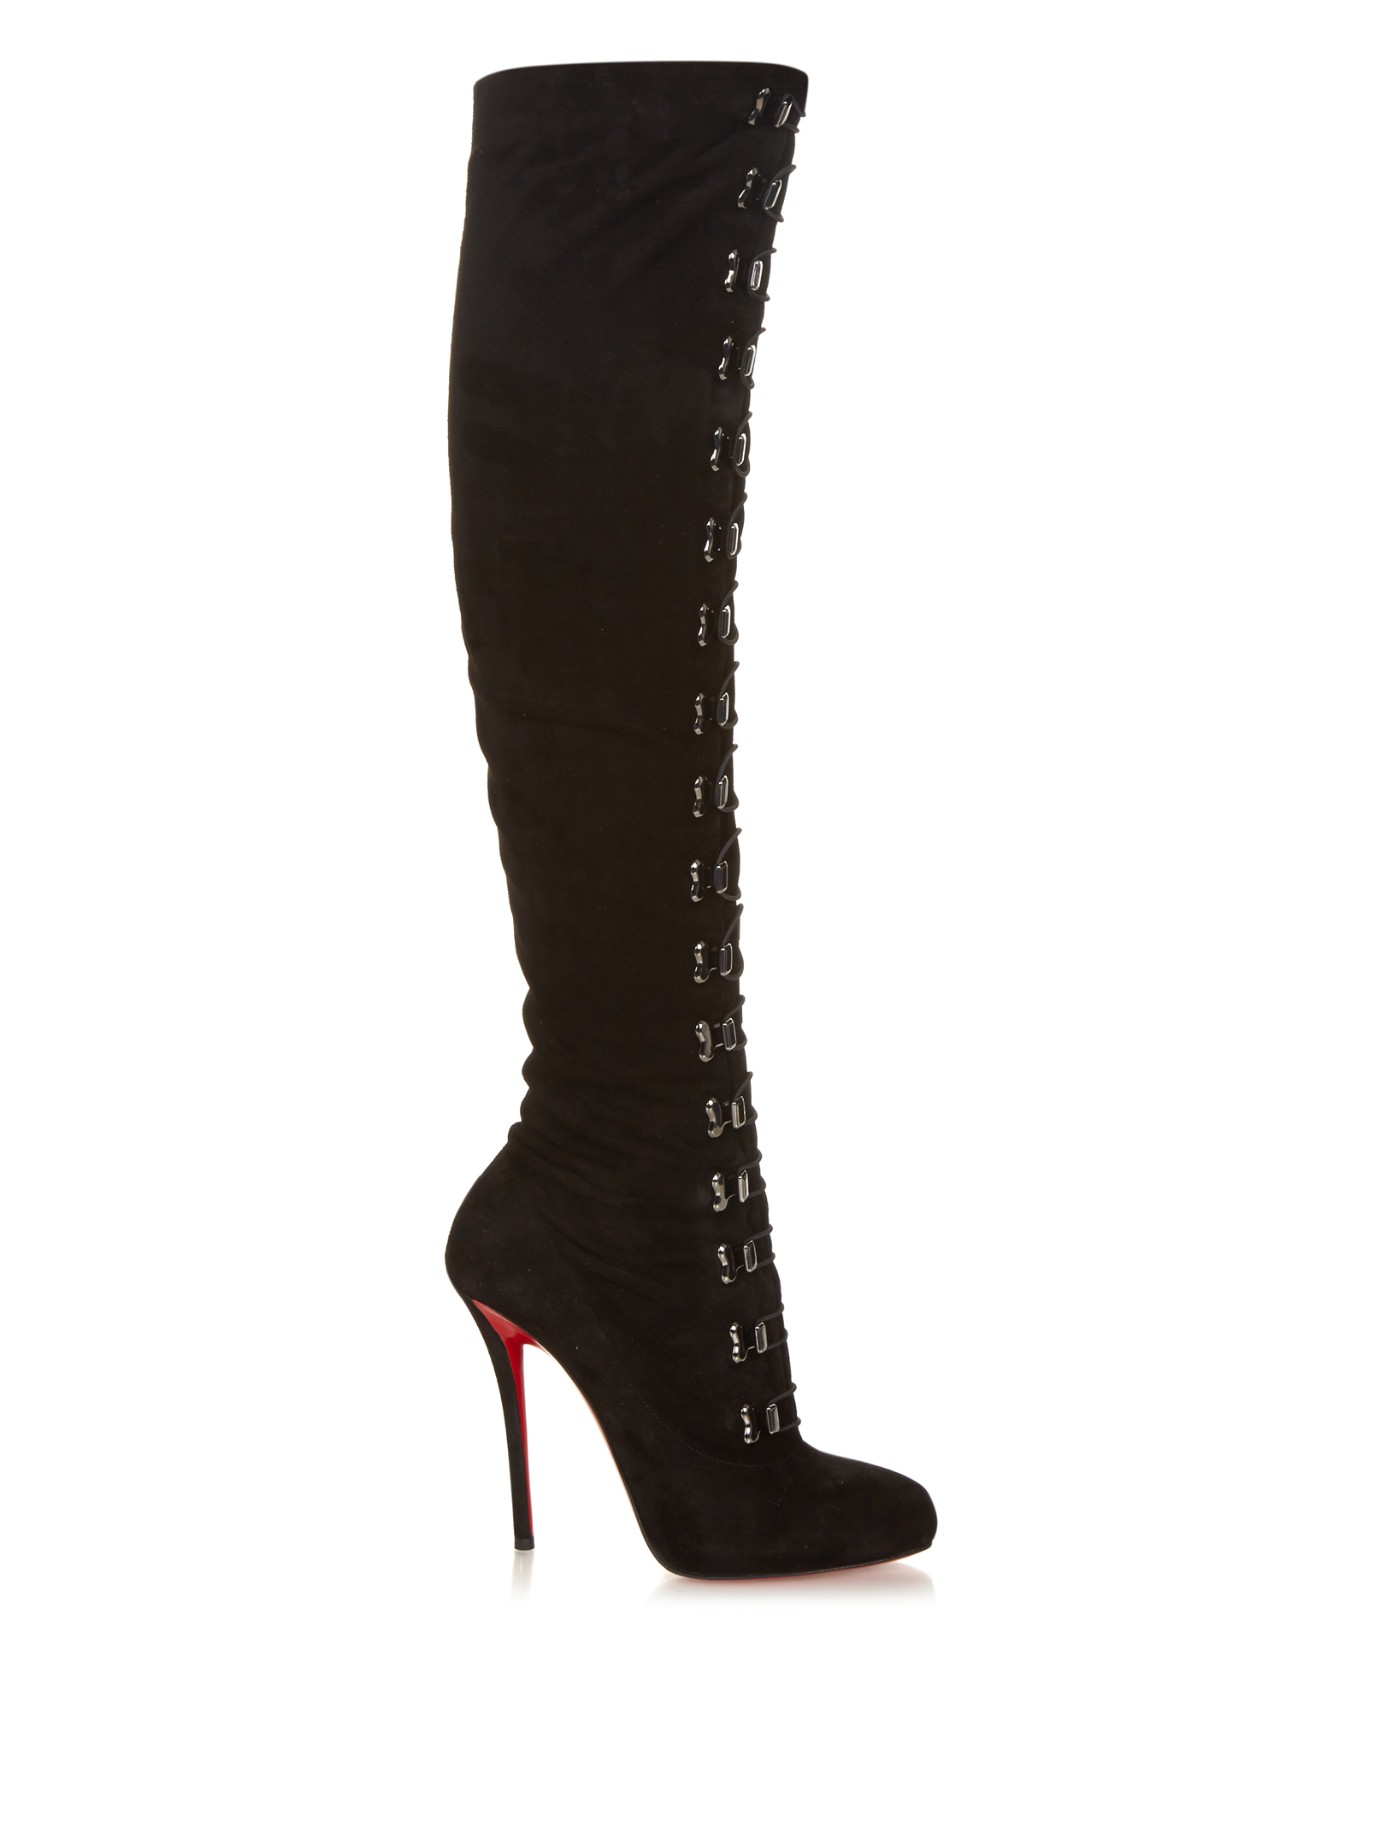 christian louboutin top croche suede the knee boots